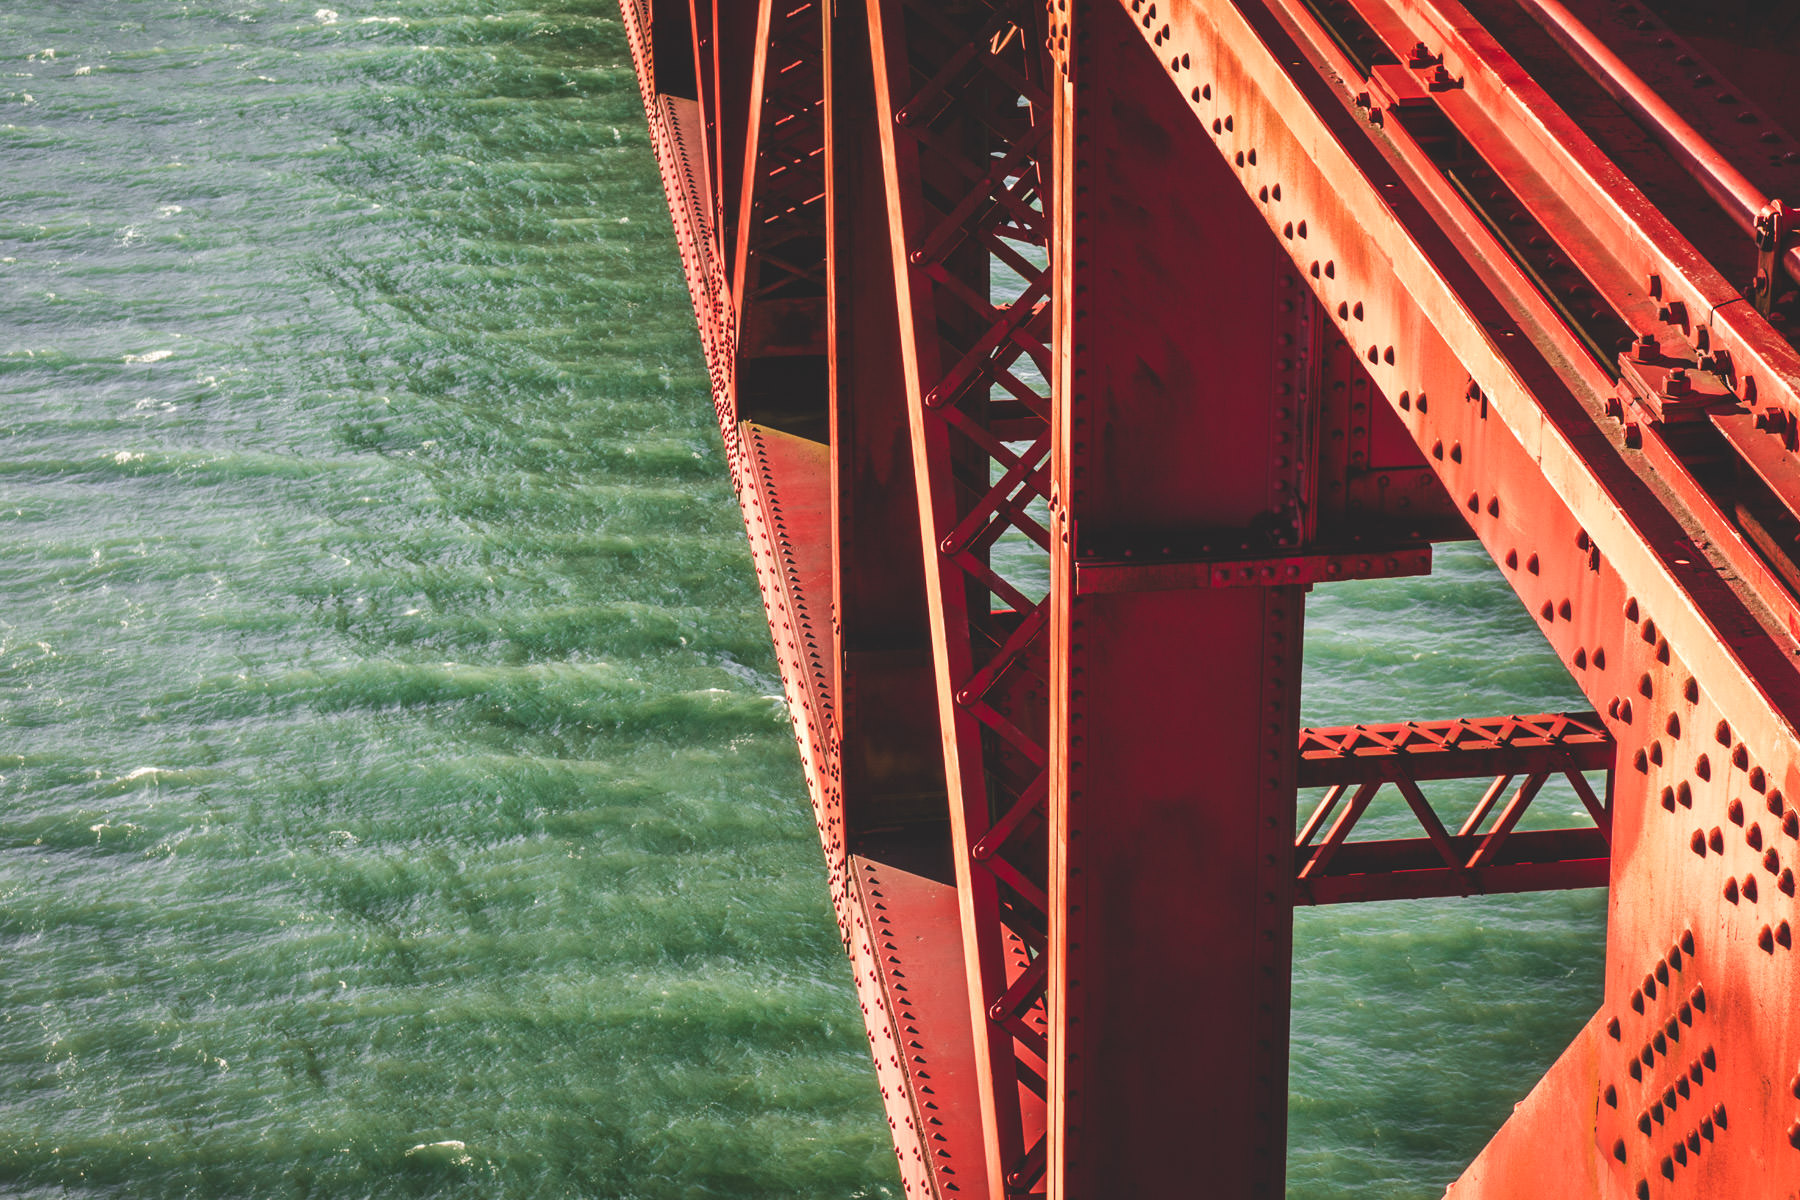 The support structure of the Golden Gate Bridge's roadway floats above the entrance to San Francisco Bay.